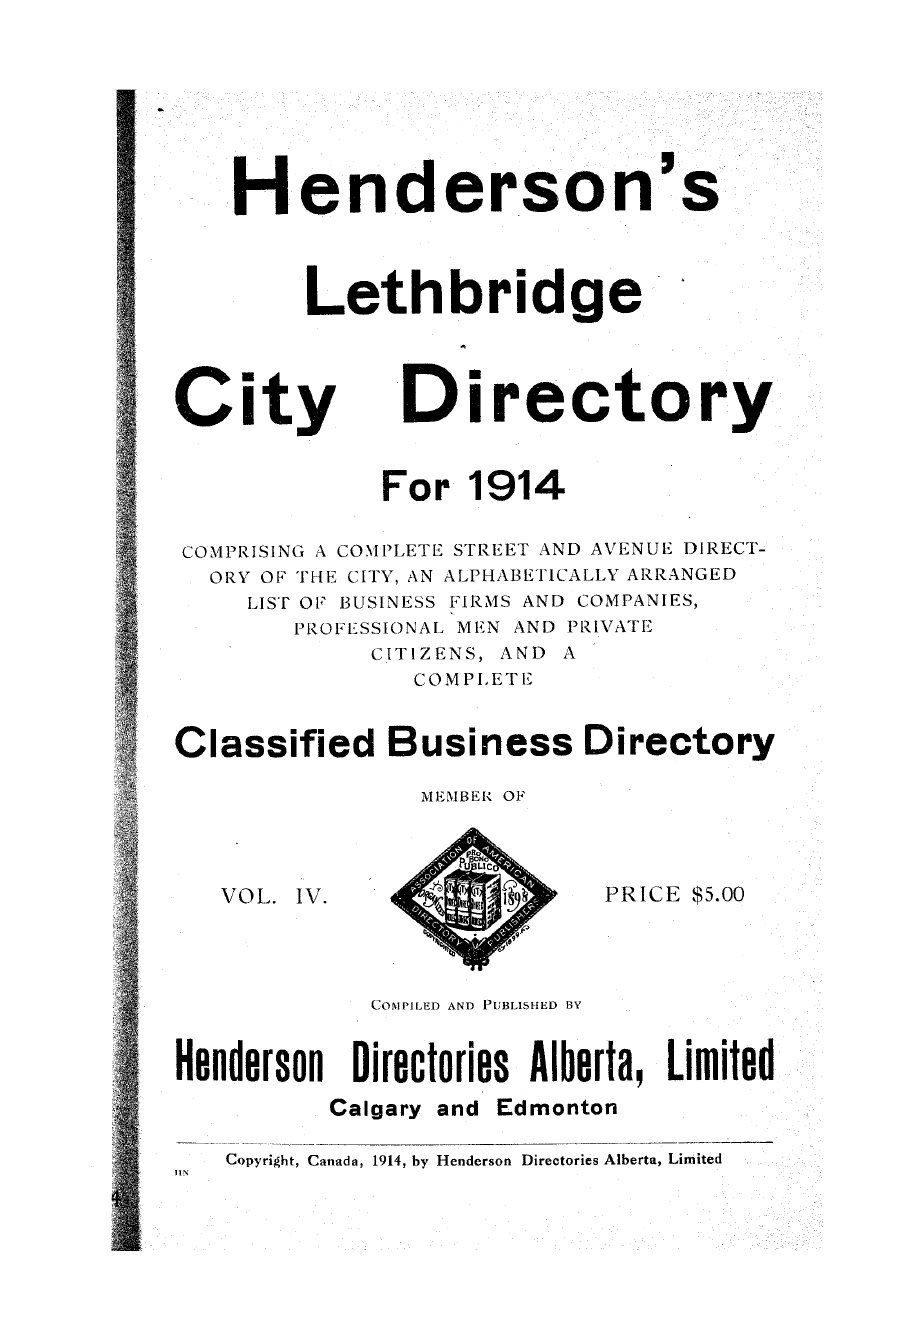 Henderson's Directory for City of Calgary, Alberta. 1960 Henderson's Directories